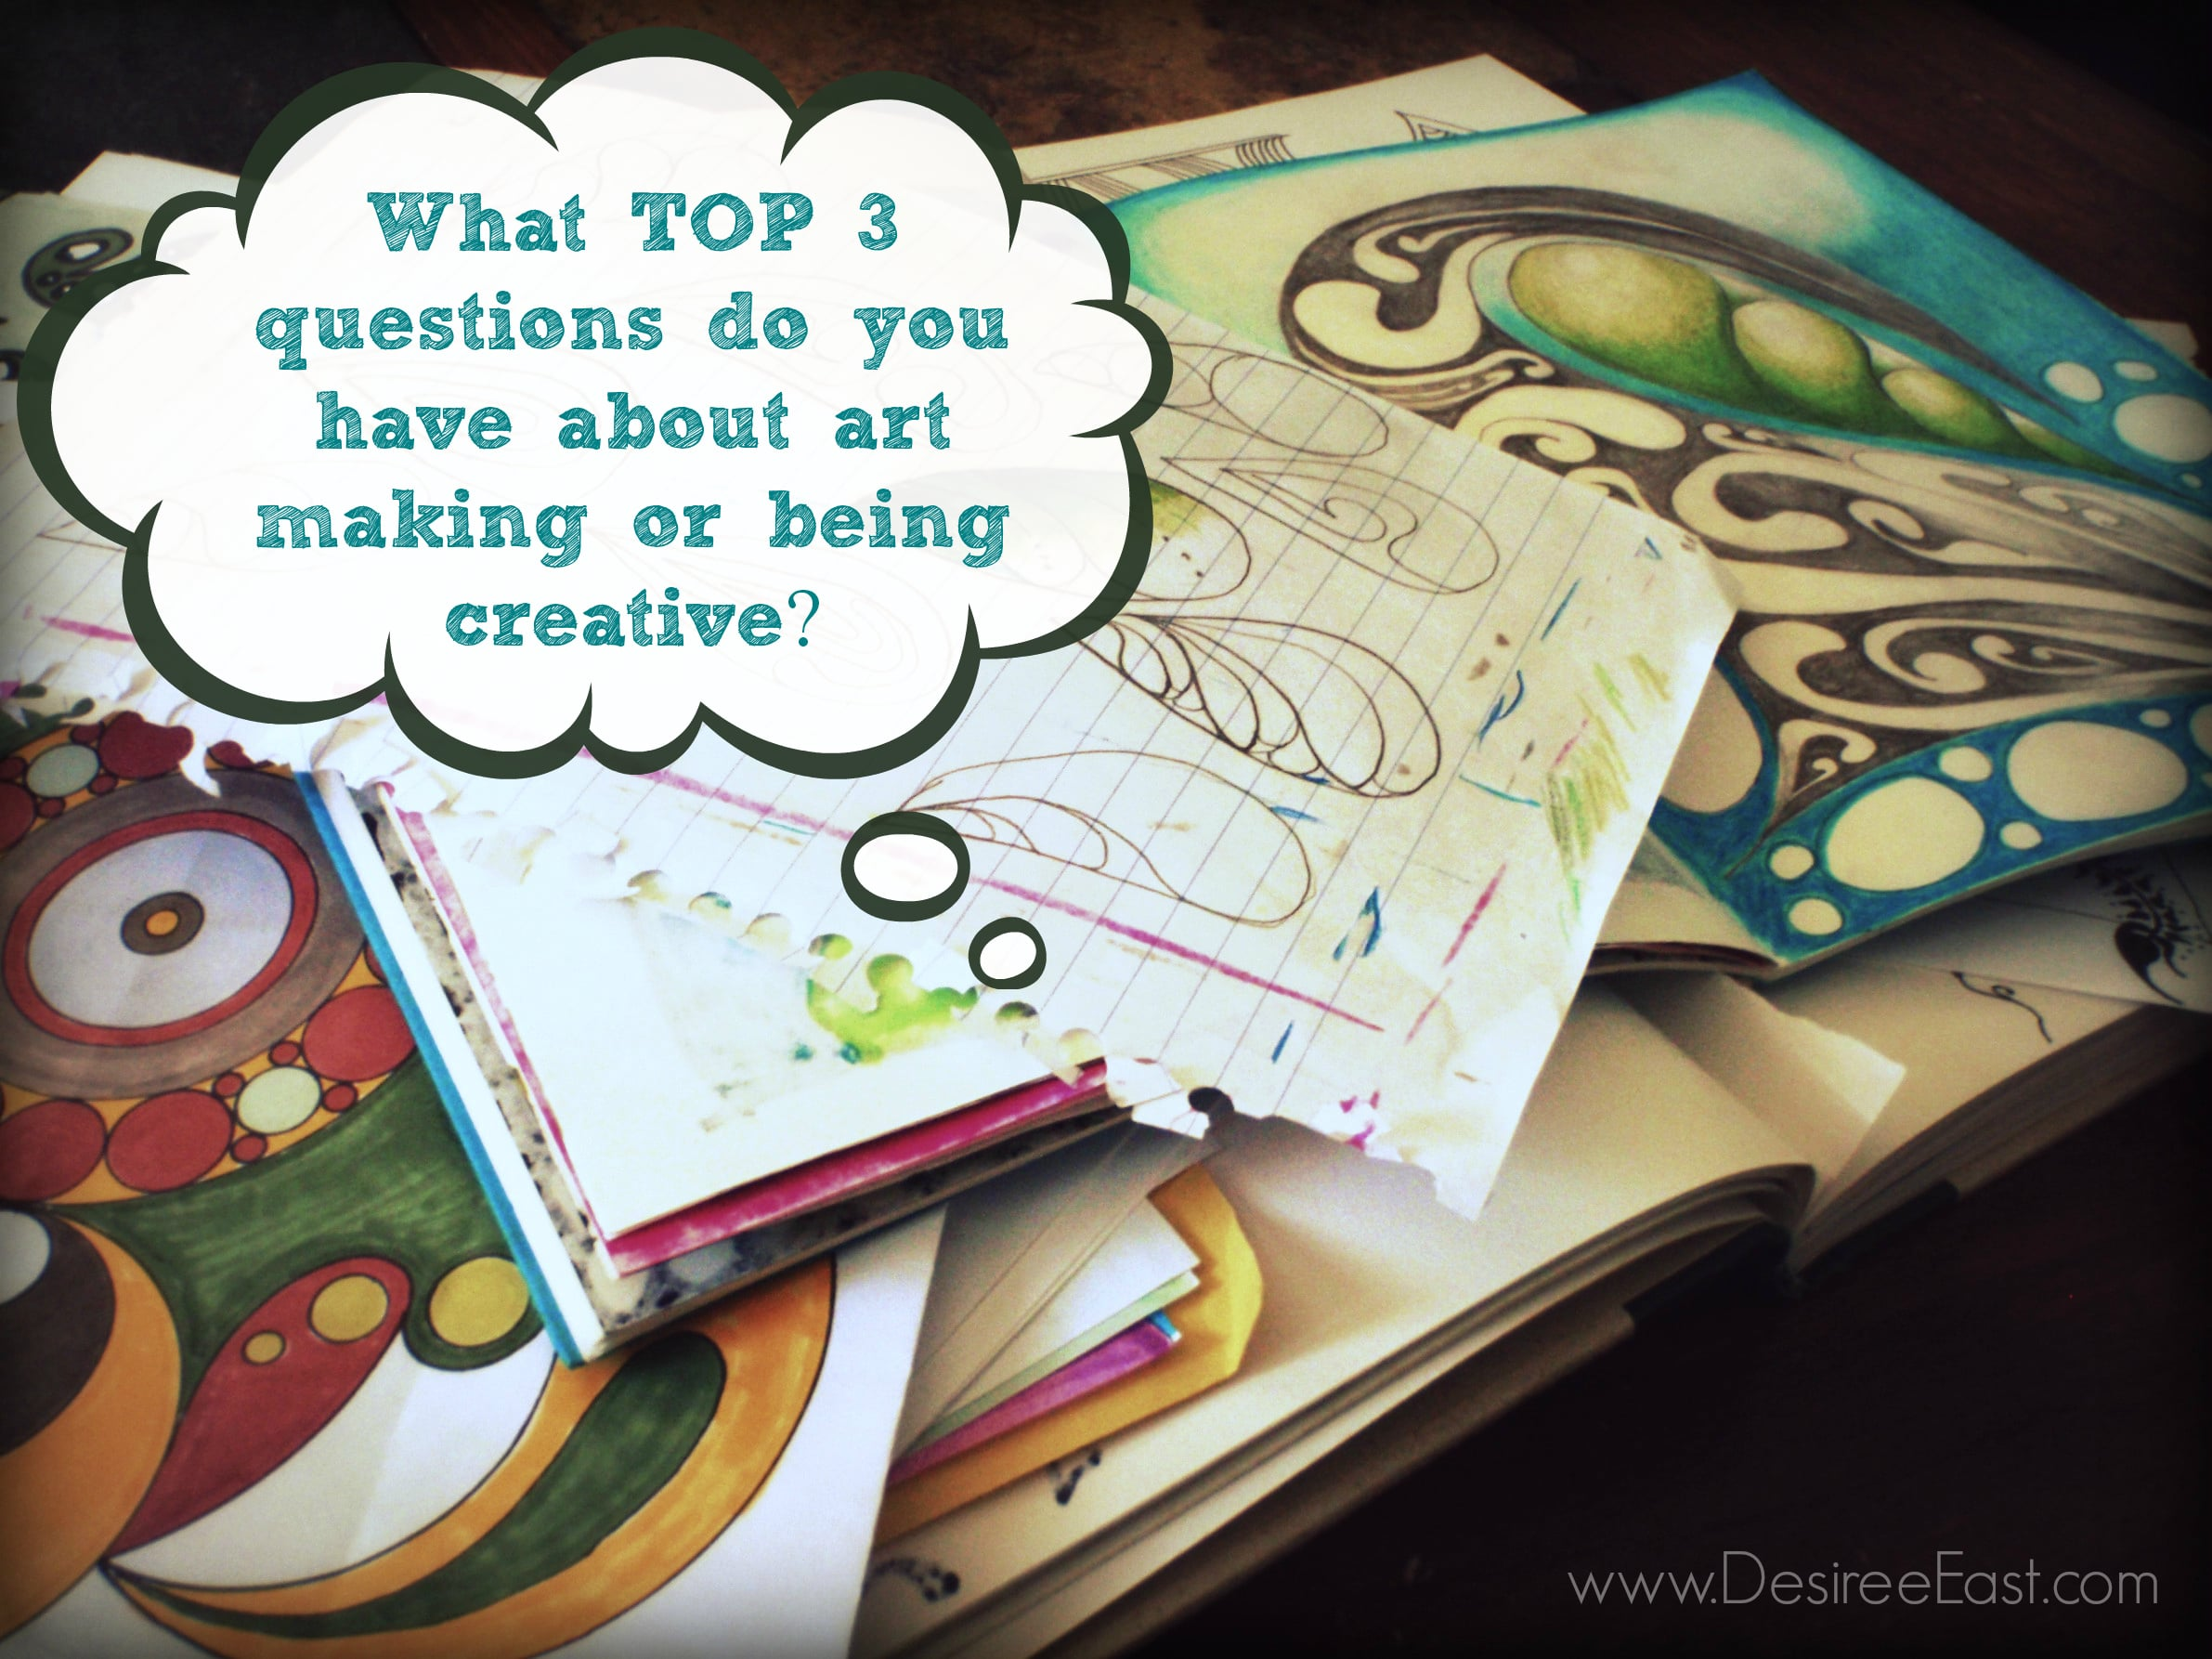 What top 3 questions do you have about art making or being creative? Desiree East